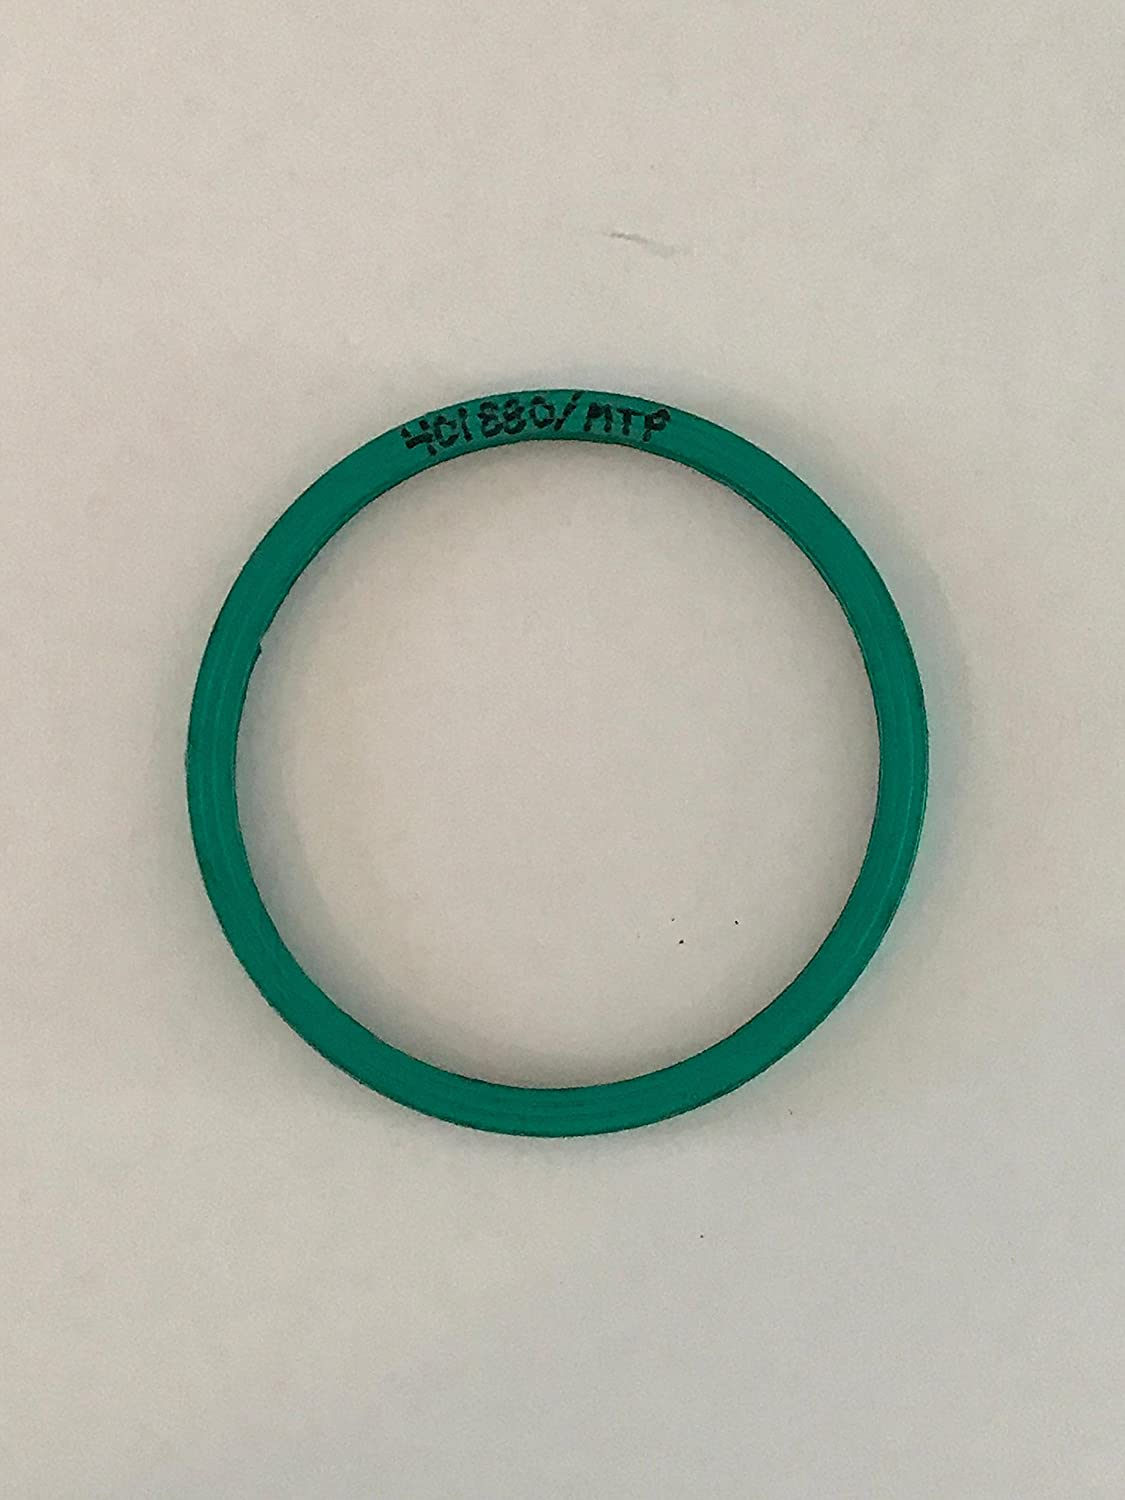 Still sight glass and recovery head 6 1/4� Viton green G15976 #401880